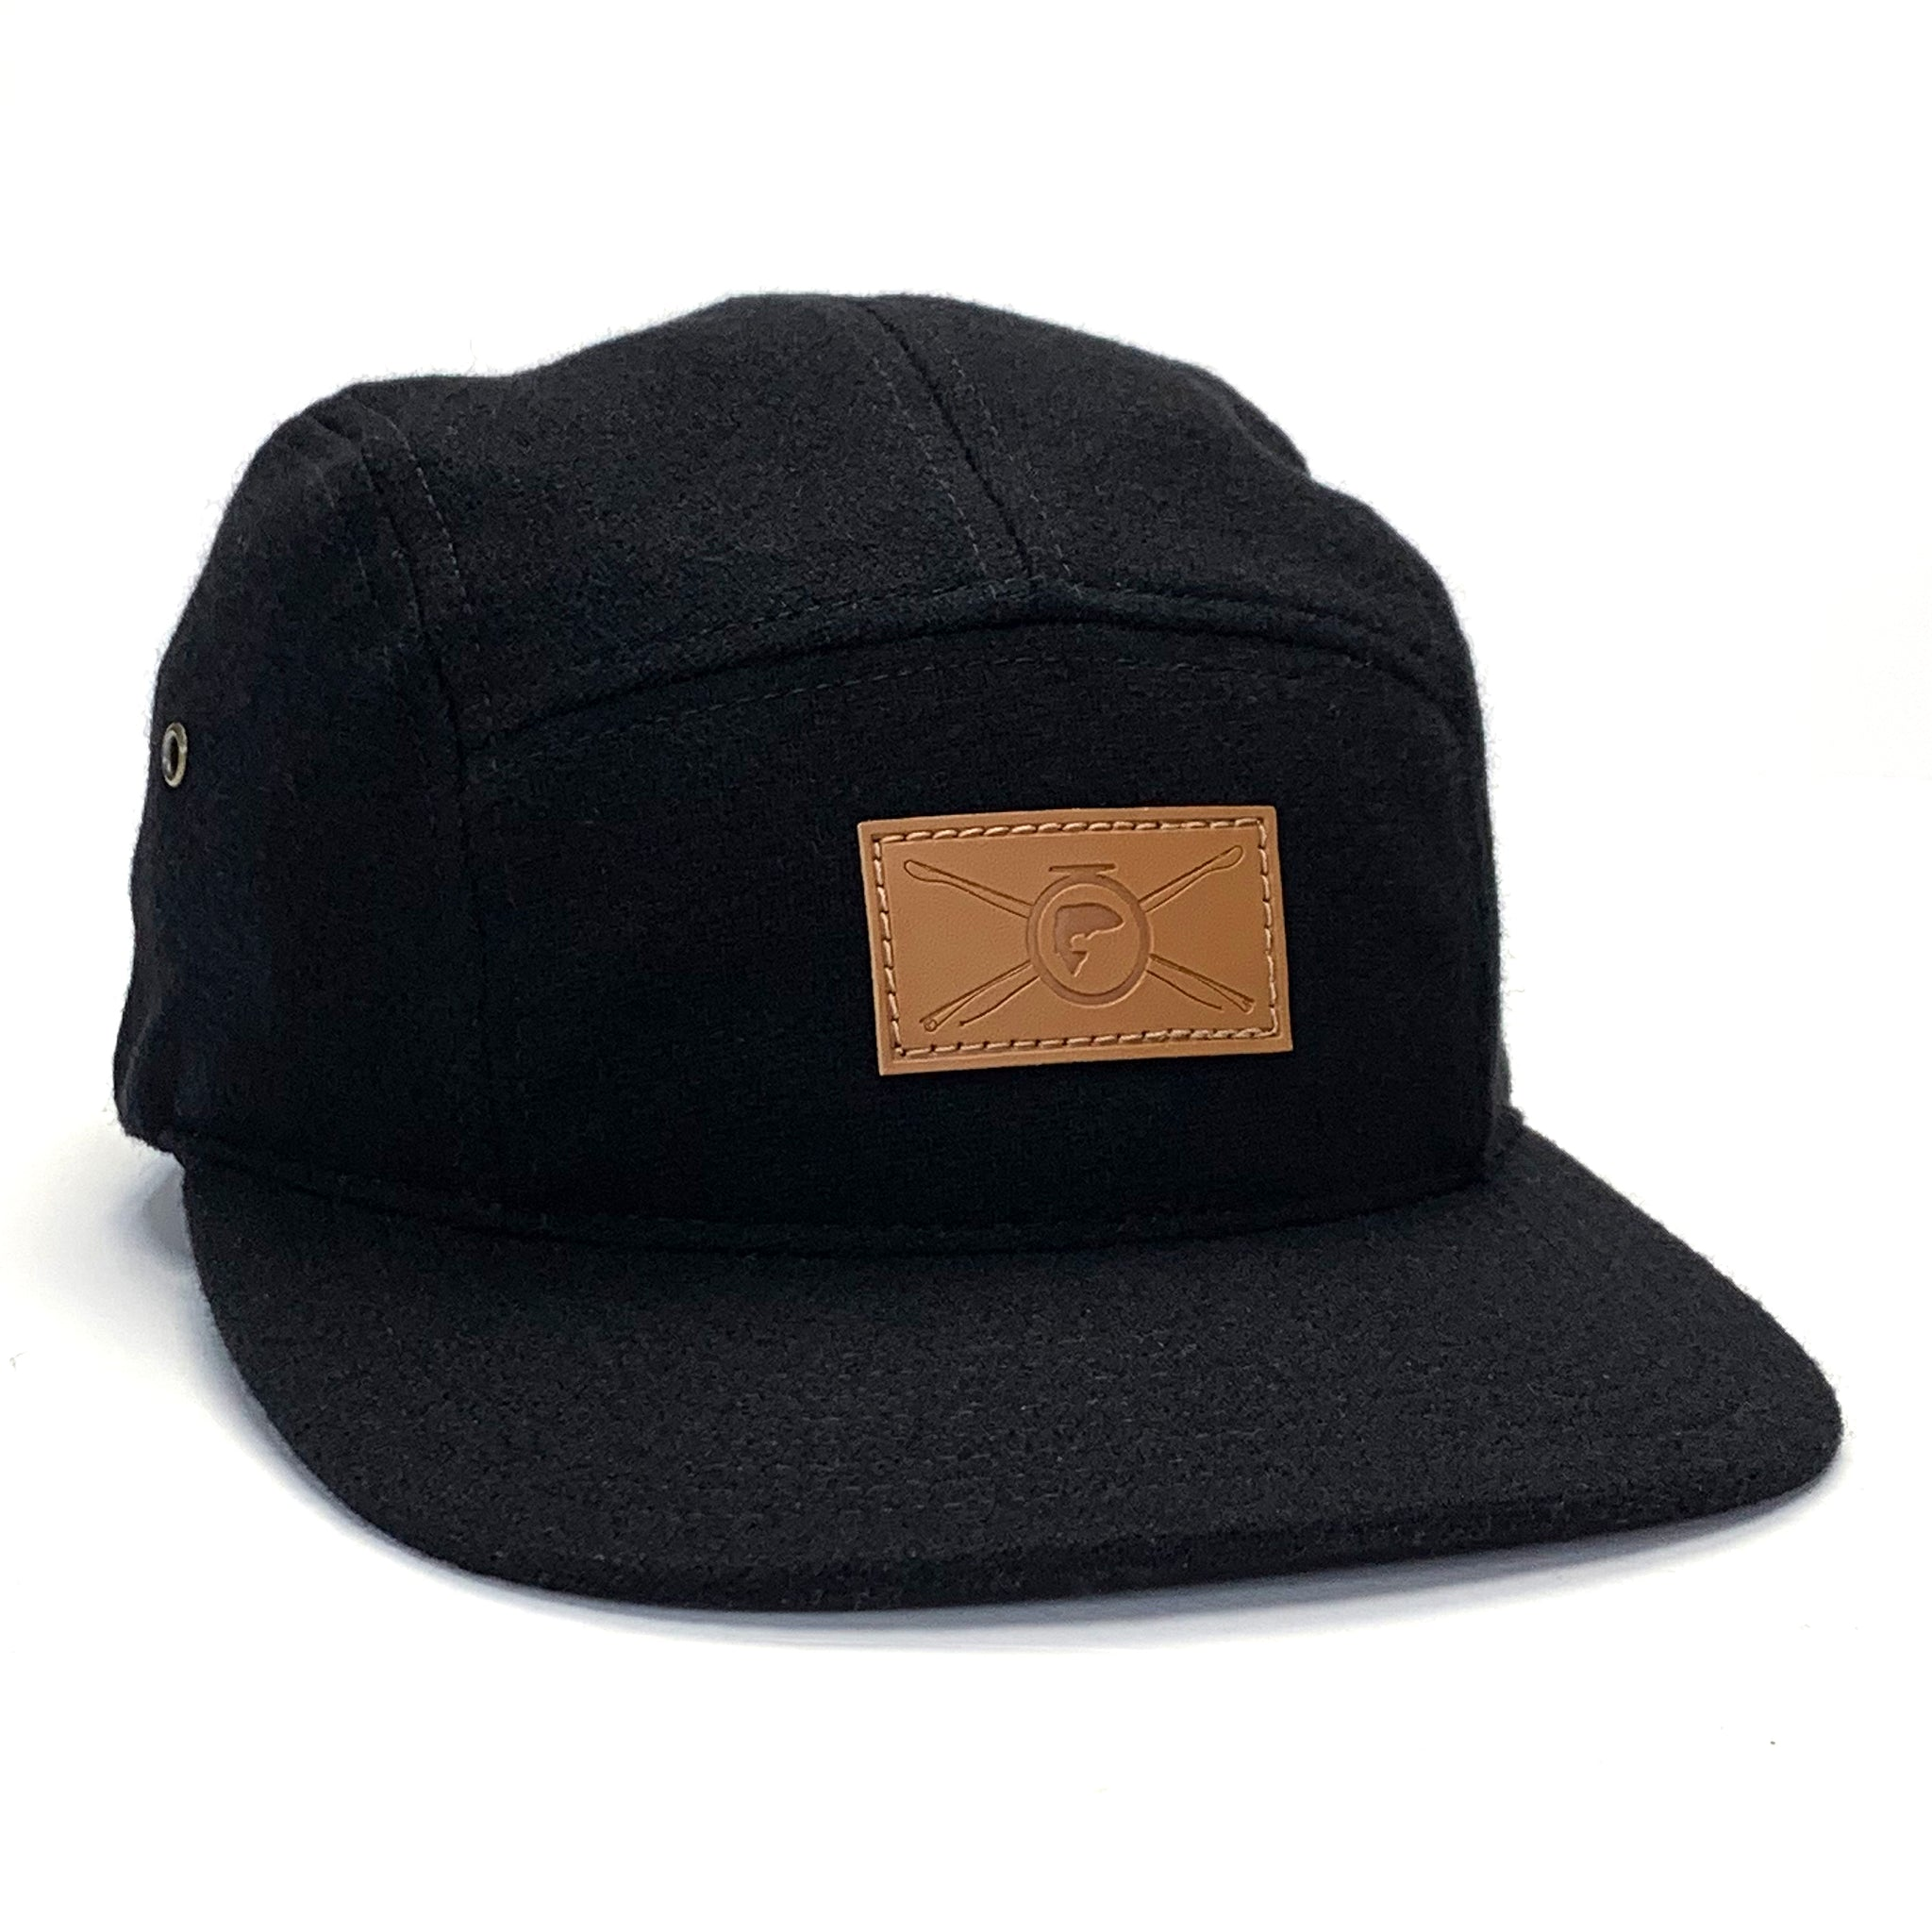 The Wool Camp Hat - Leather Patch